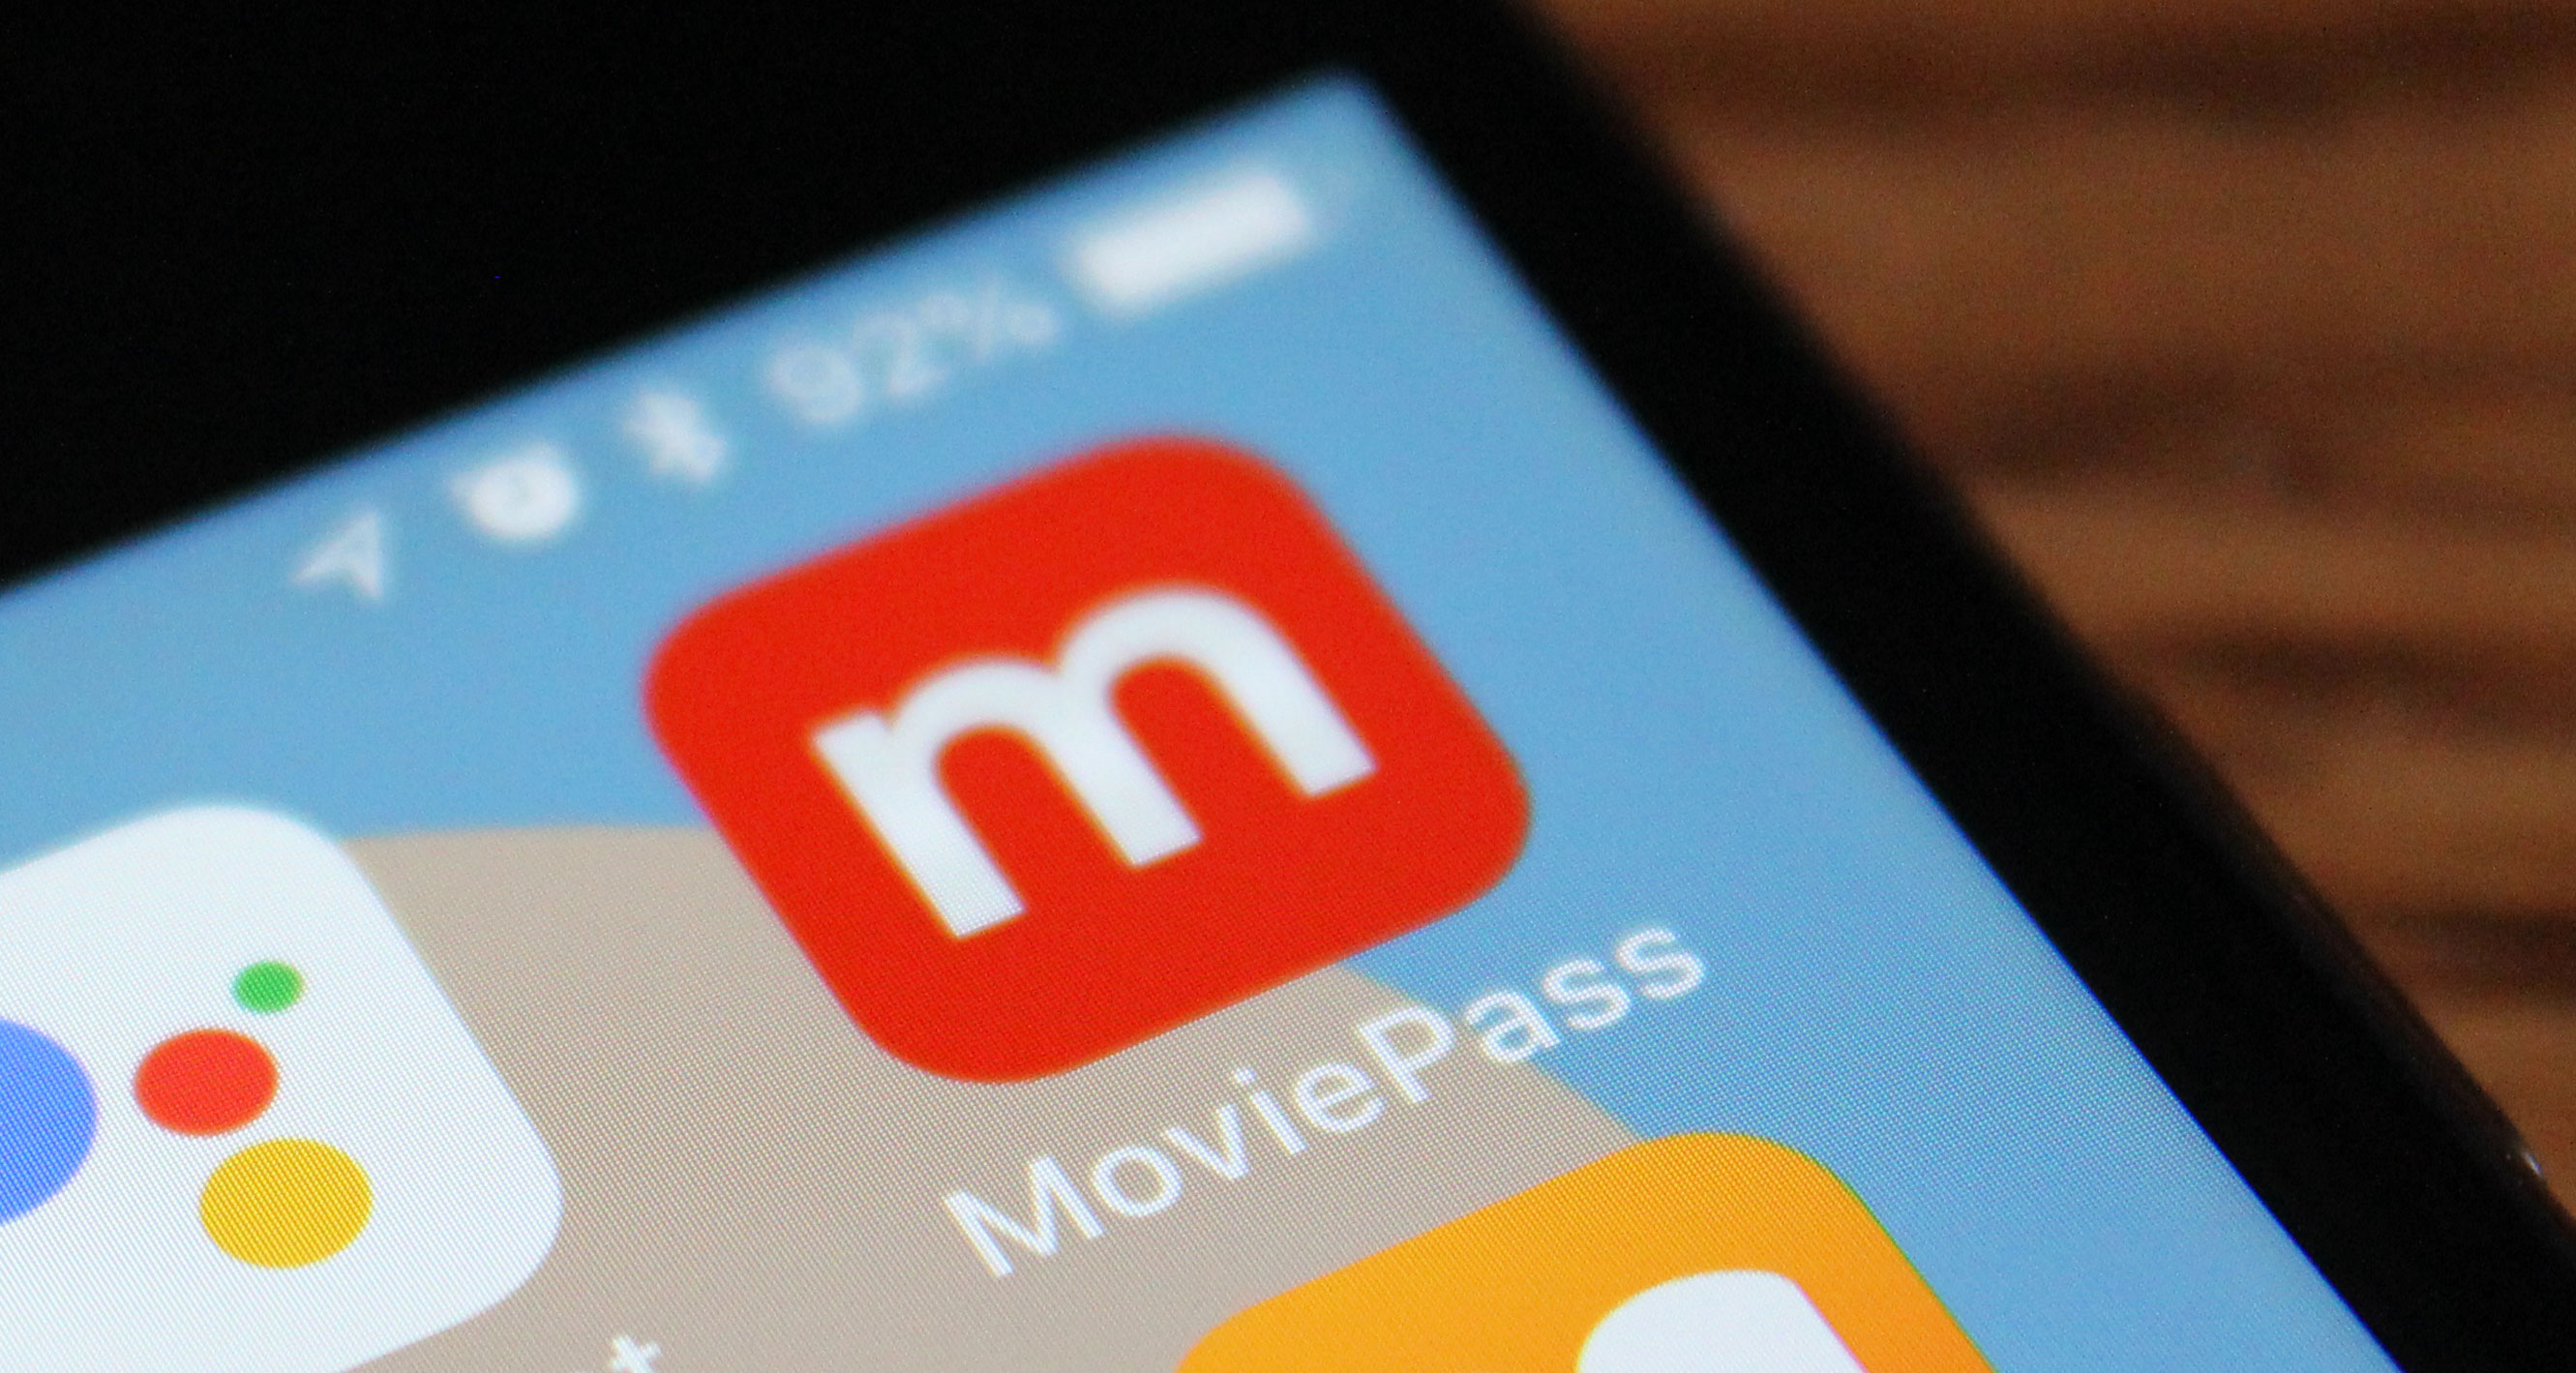 MoviePass surge pricing is here: $2 to $6 extra at peak times